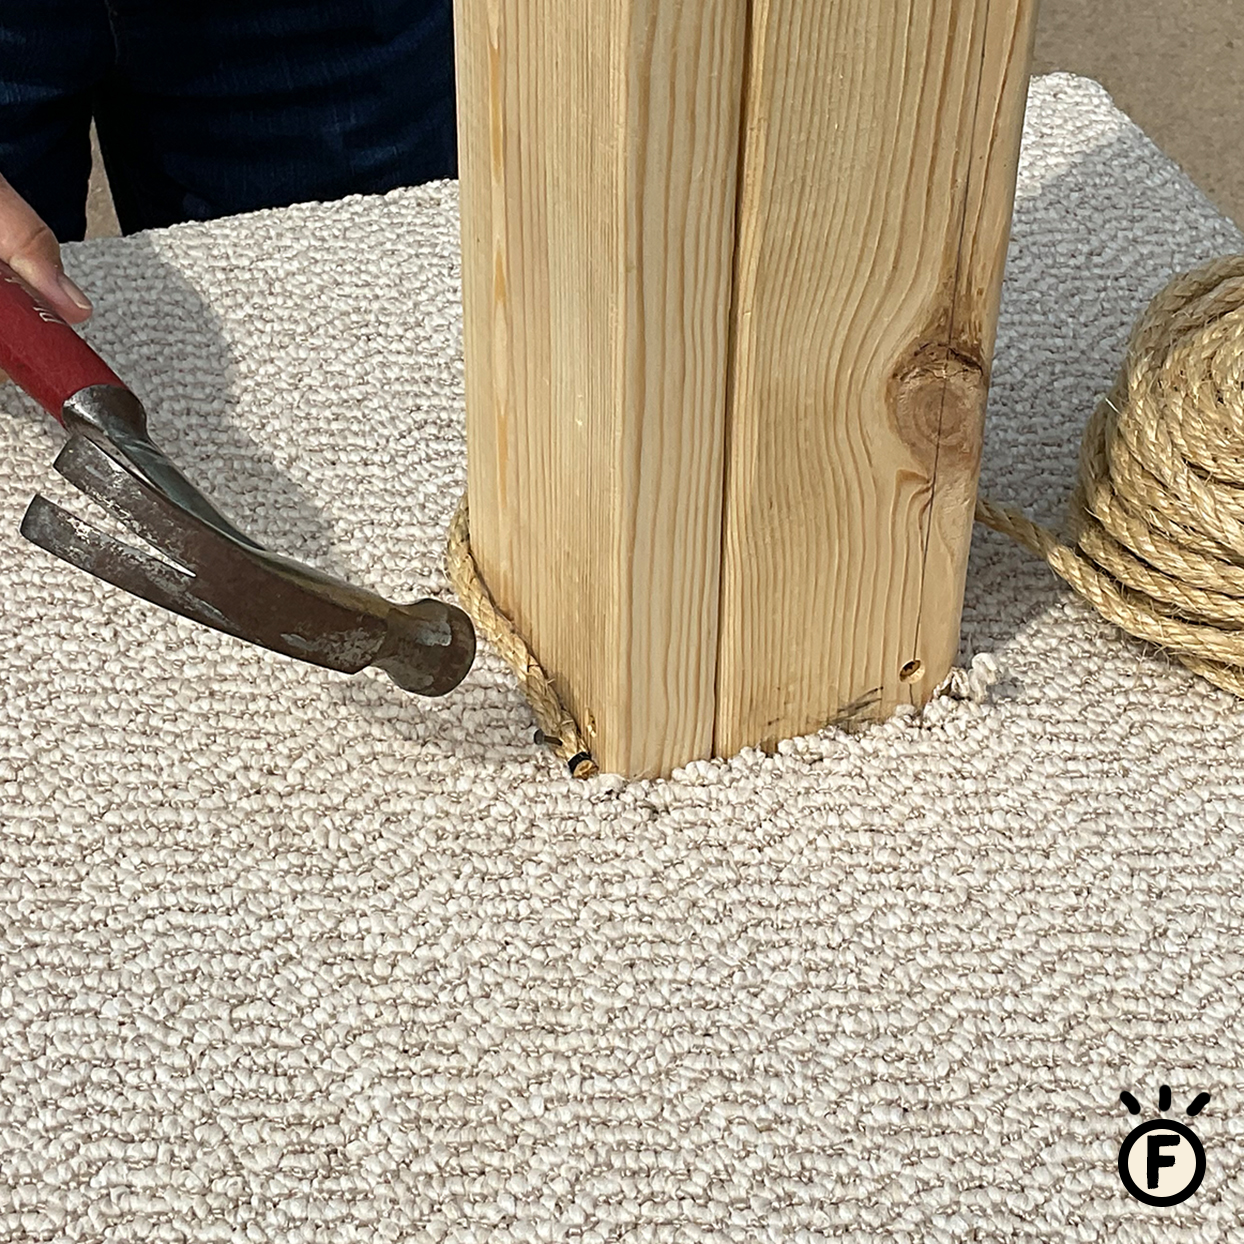 diy cat scratcher step f nailing rope onto wood post